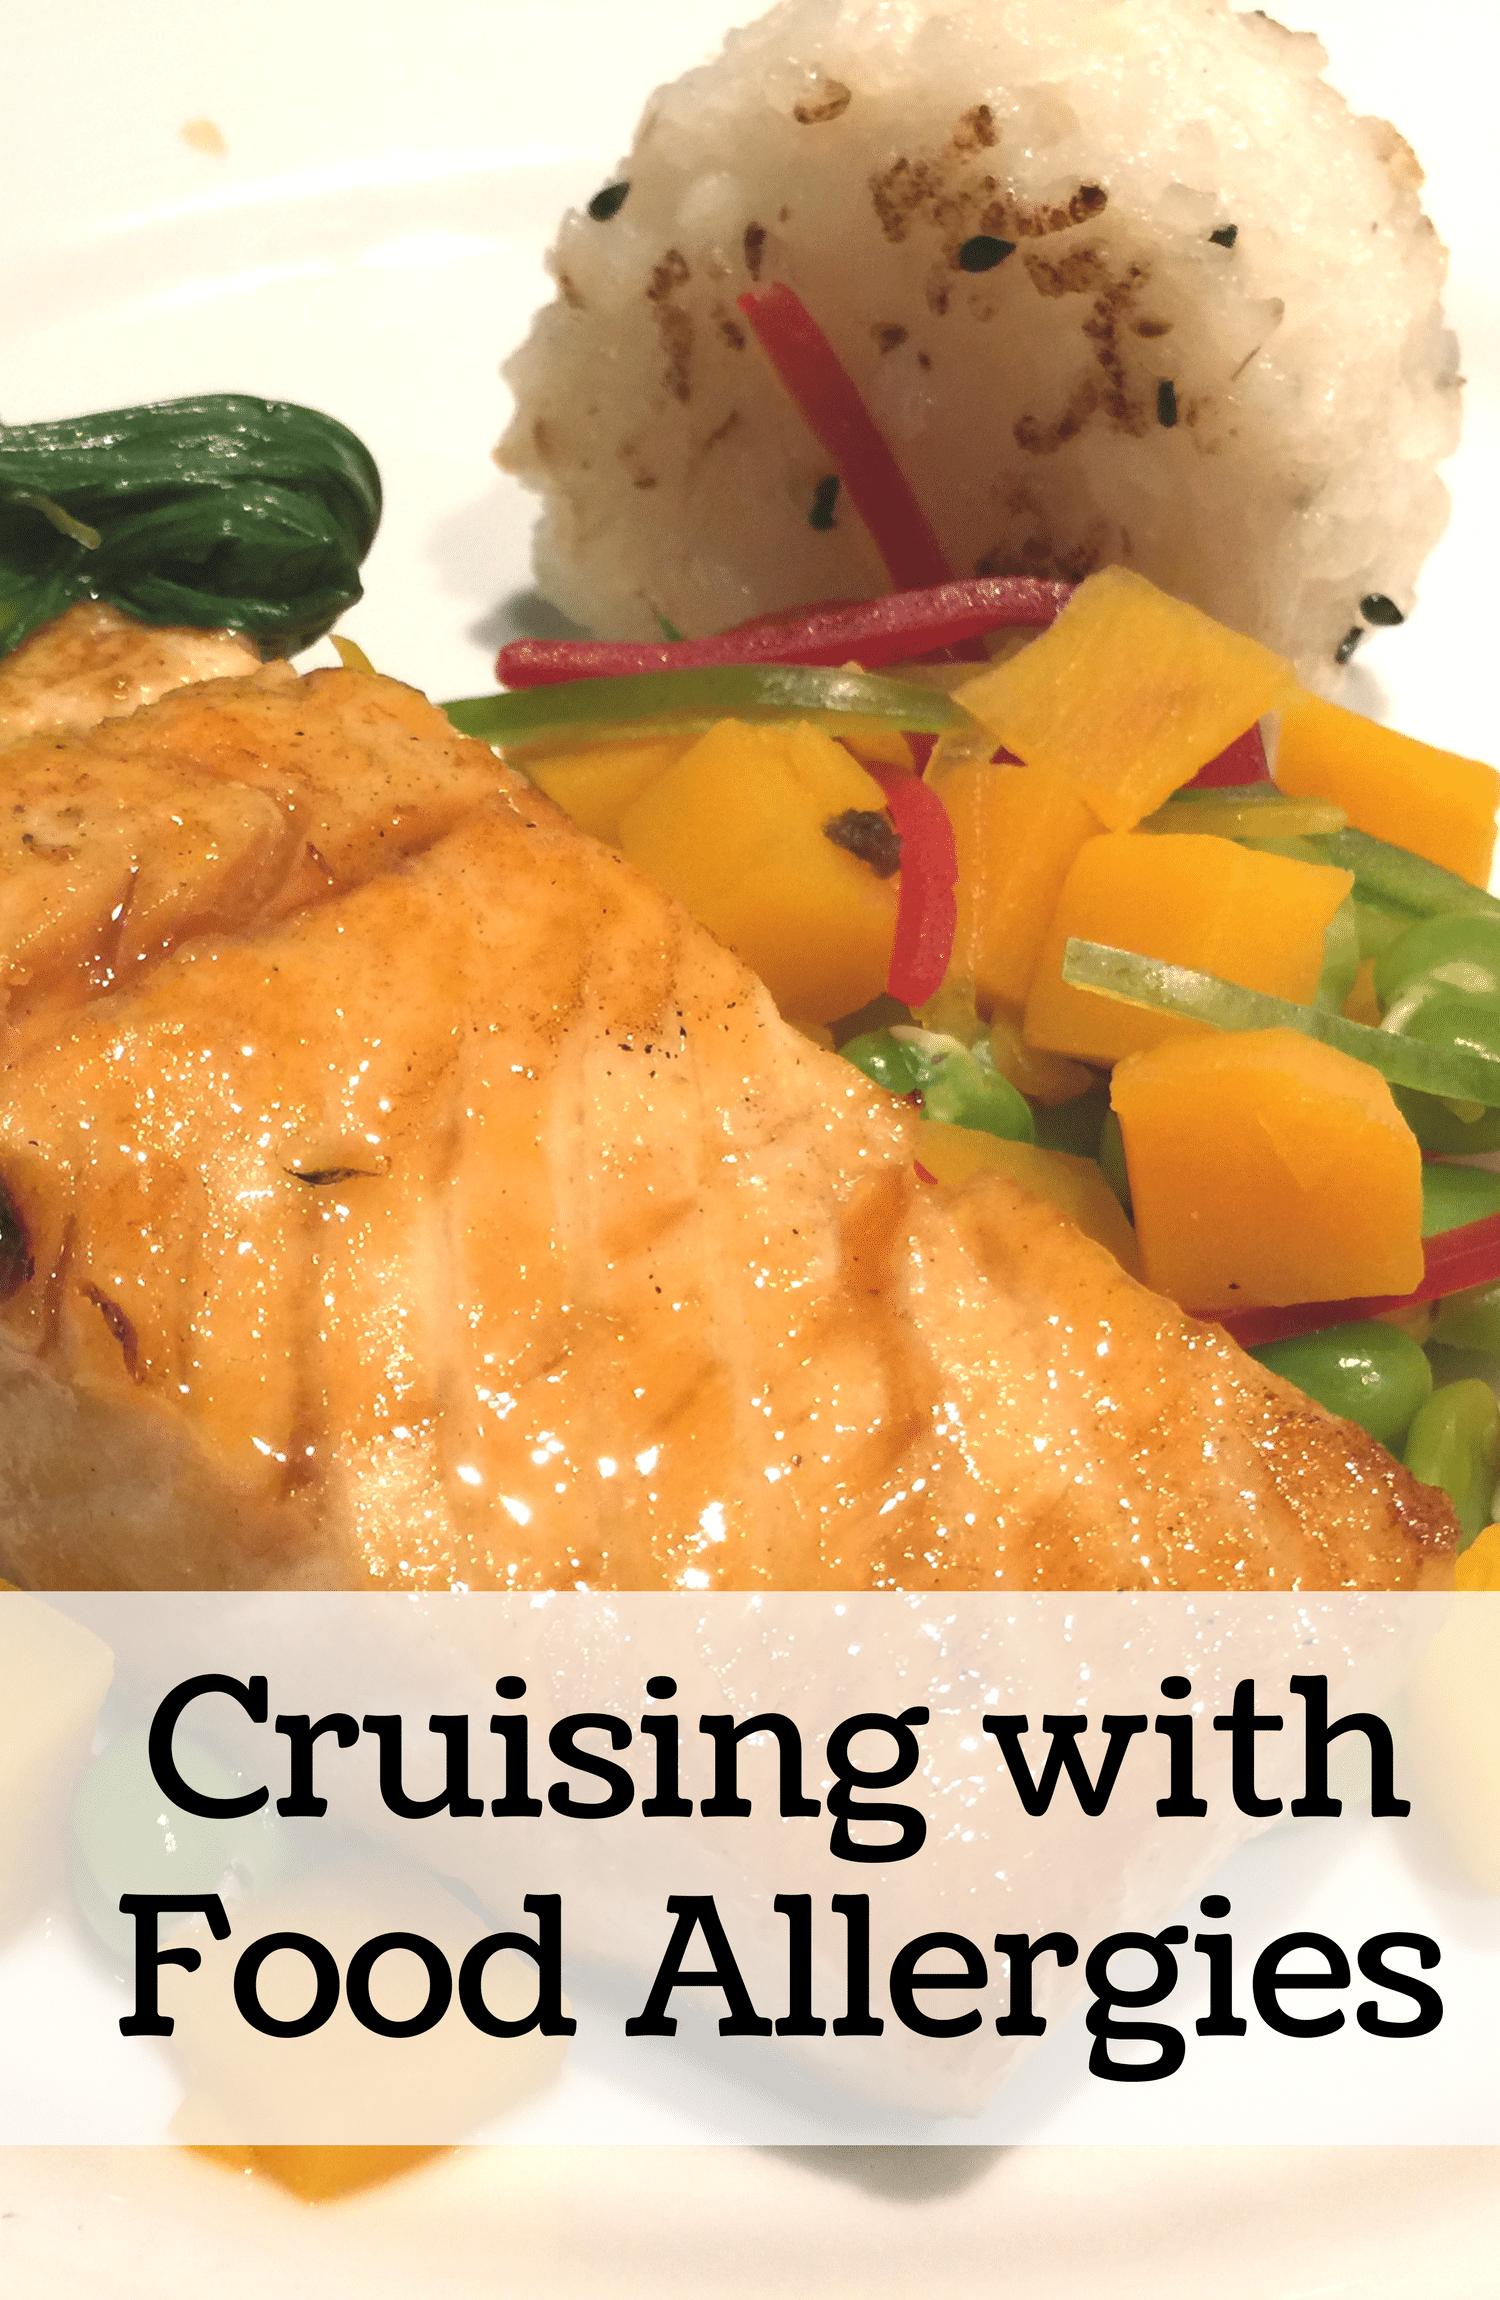 Cruising with Food Allergies and Dietary Restrictions